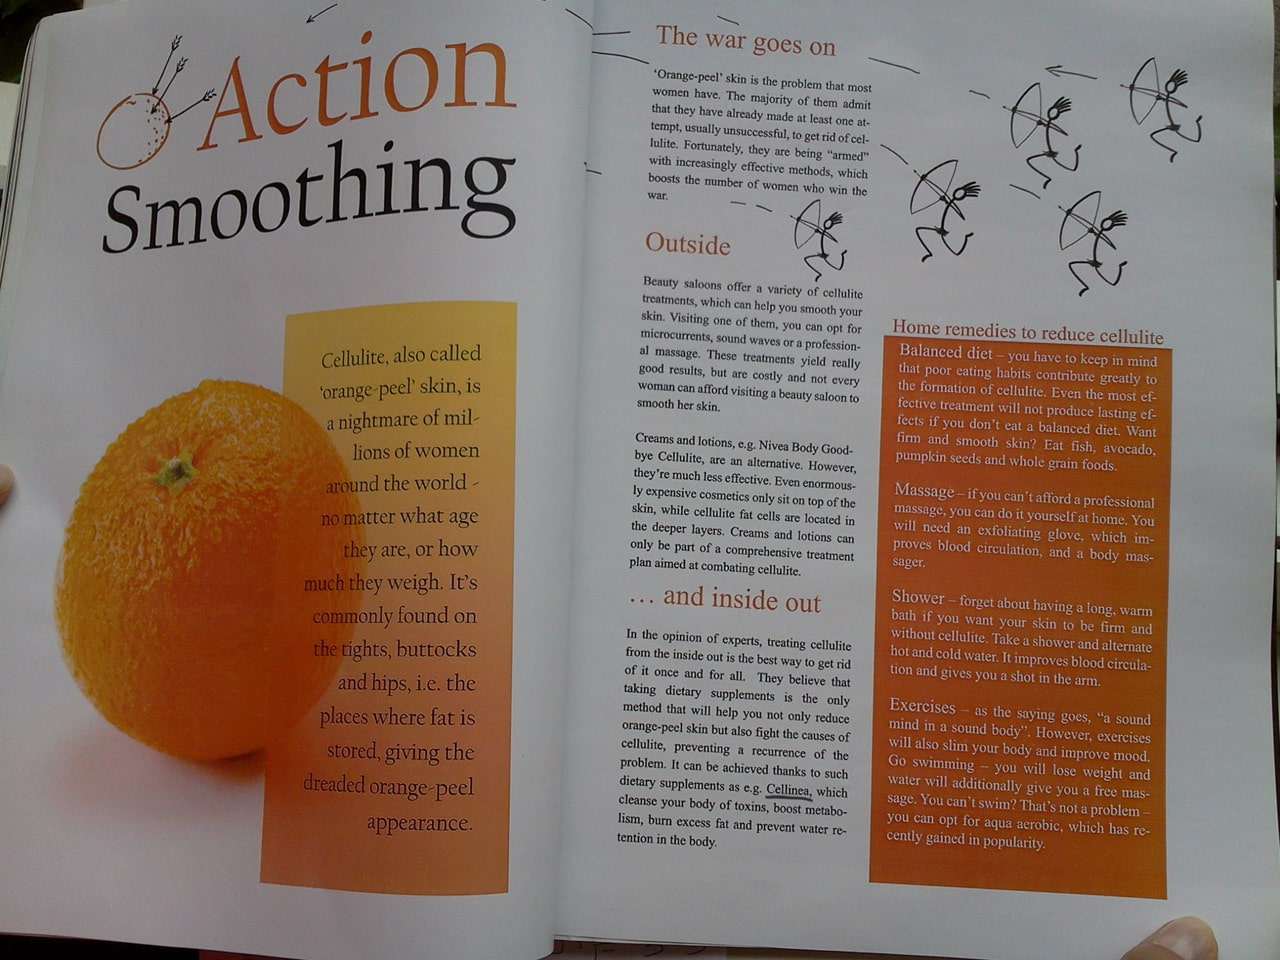 Cellulite Pills Action Smoothing Article